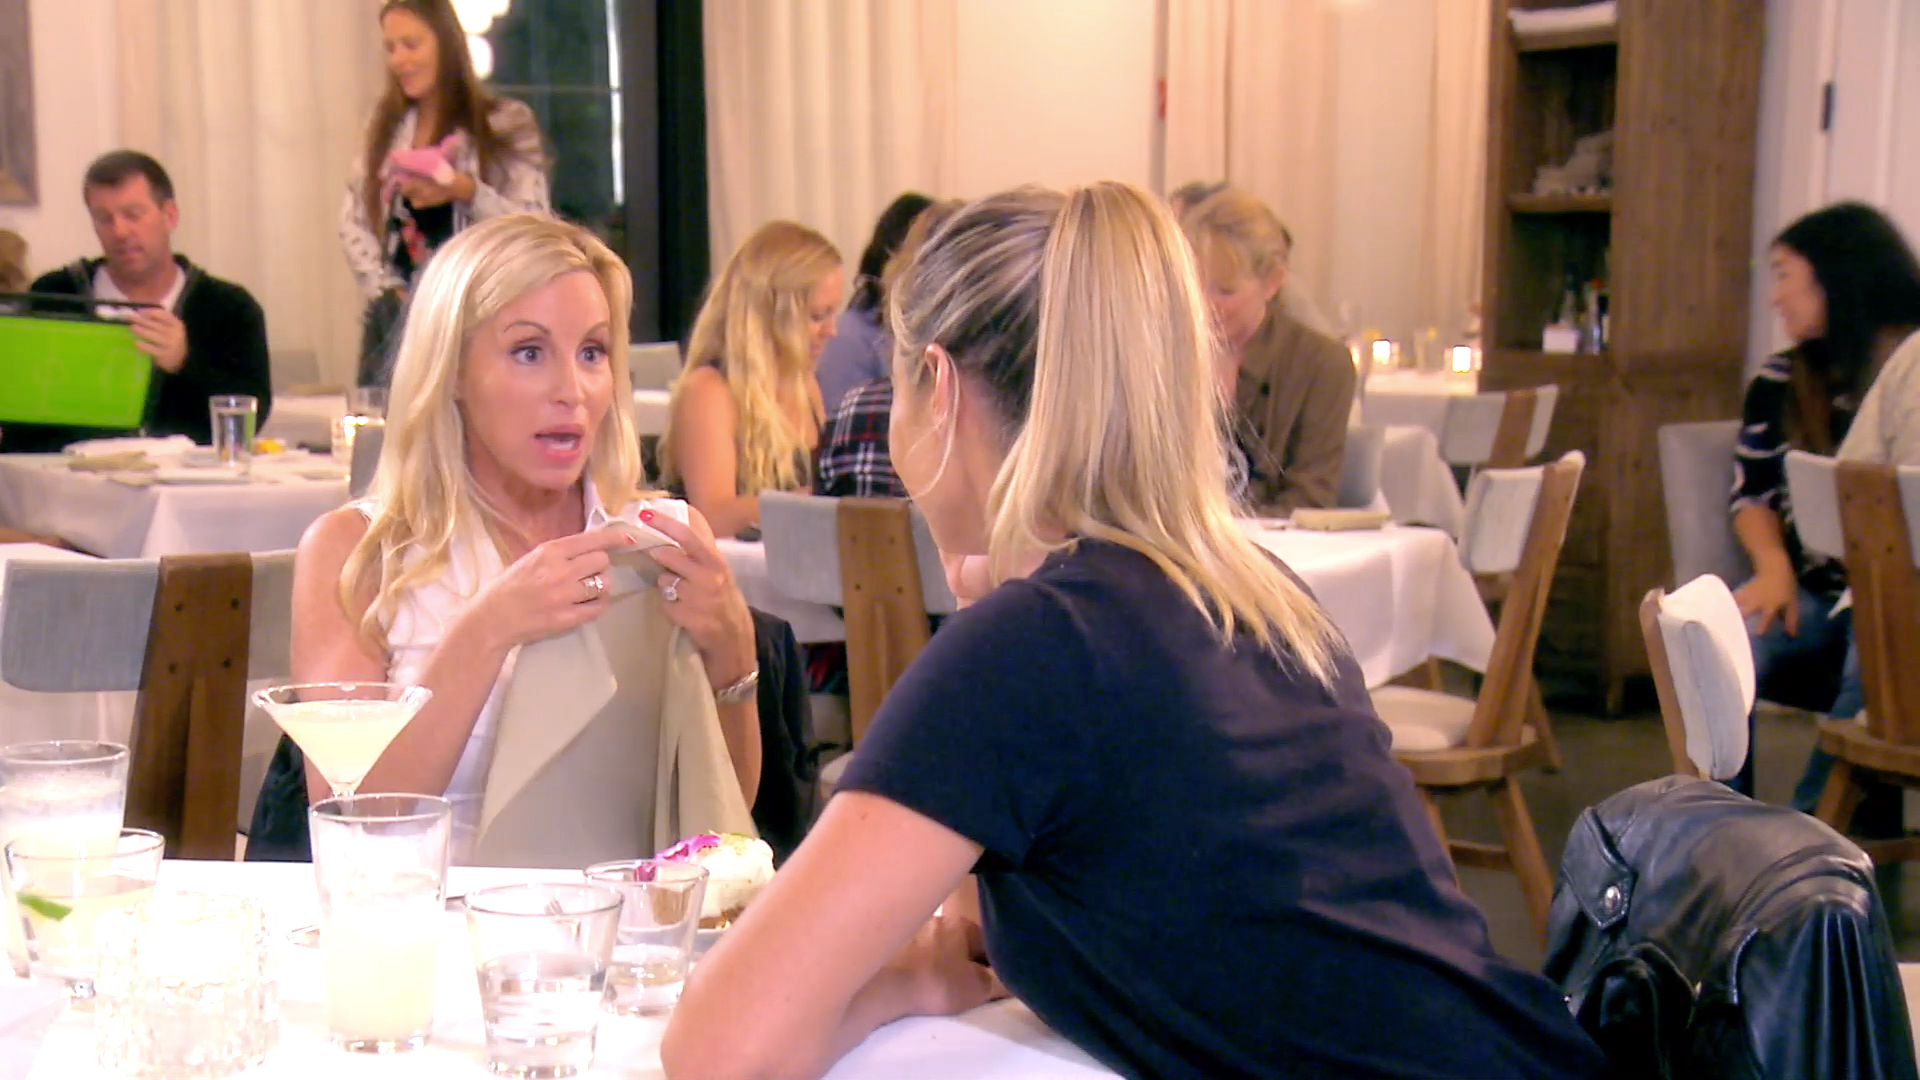 Camille Grammer Has a LOT of Opinions About the Other Ladies